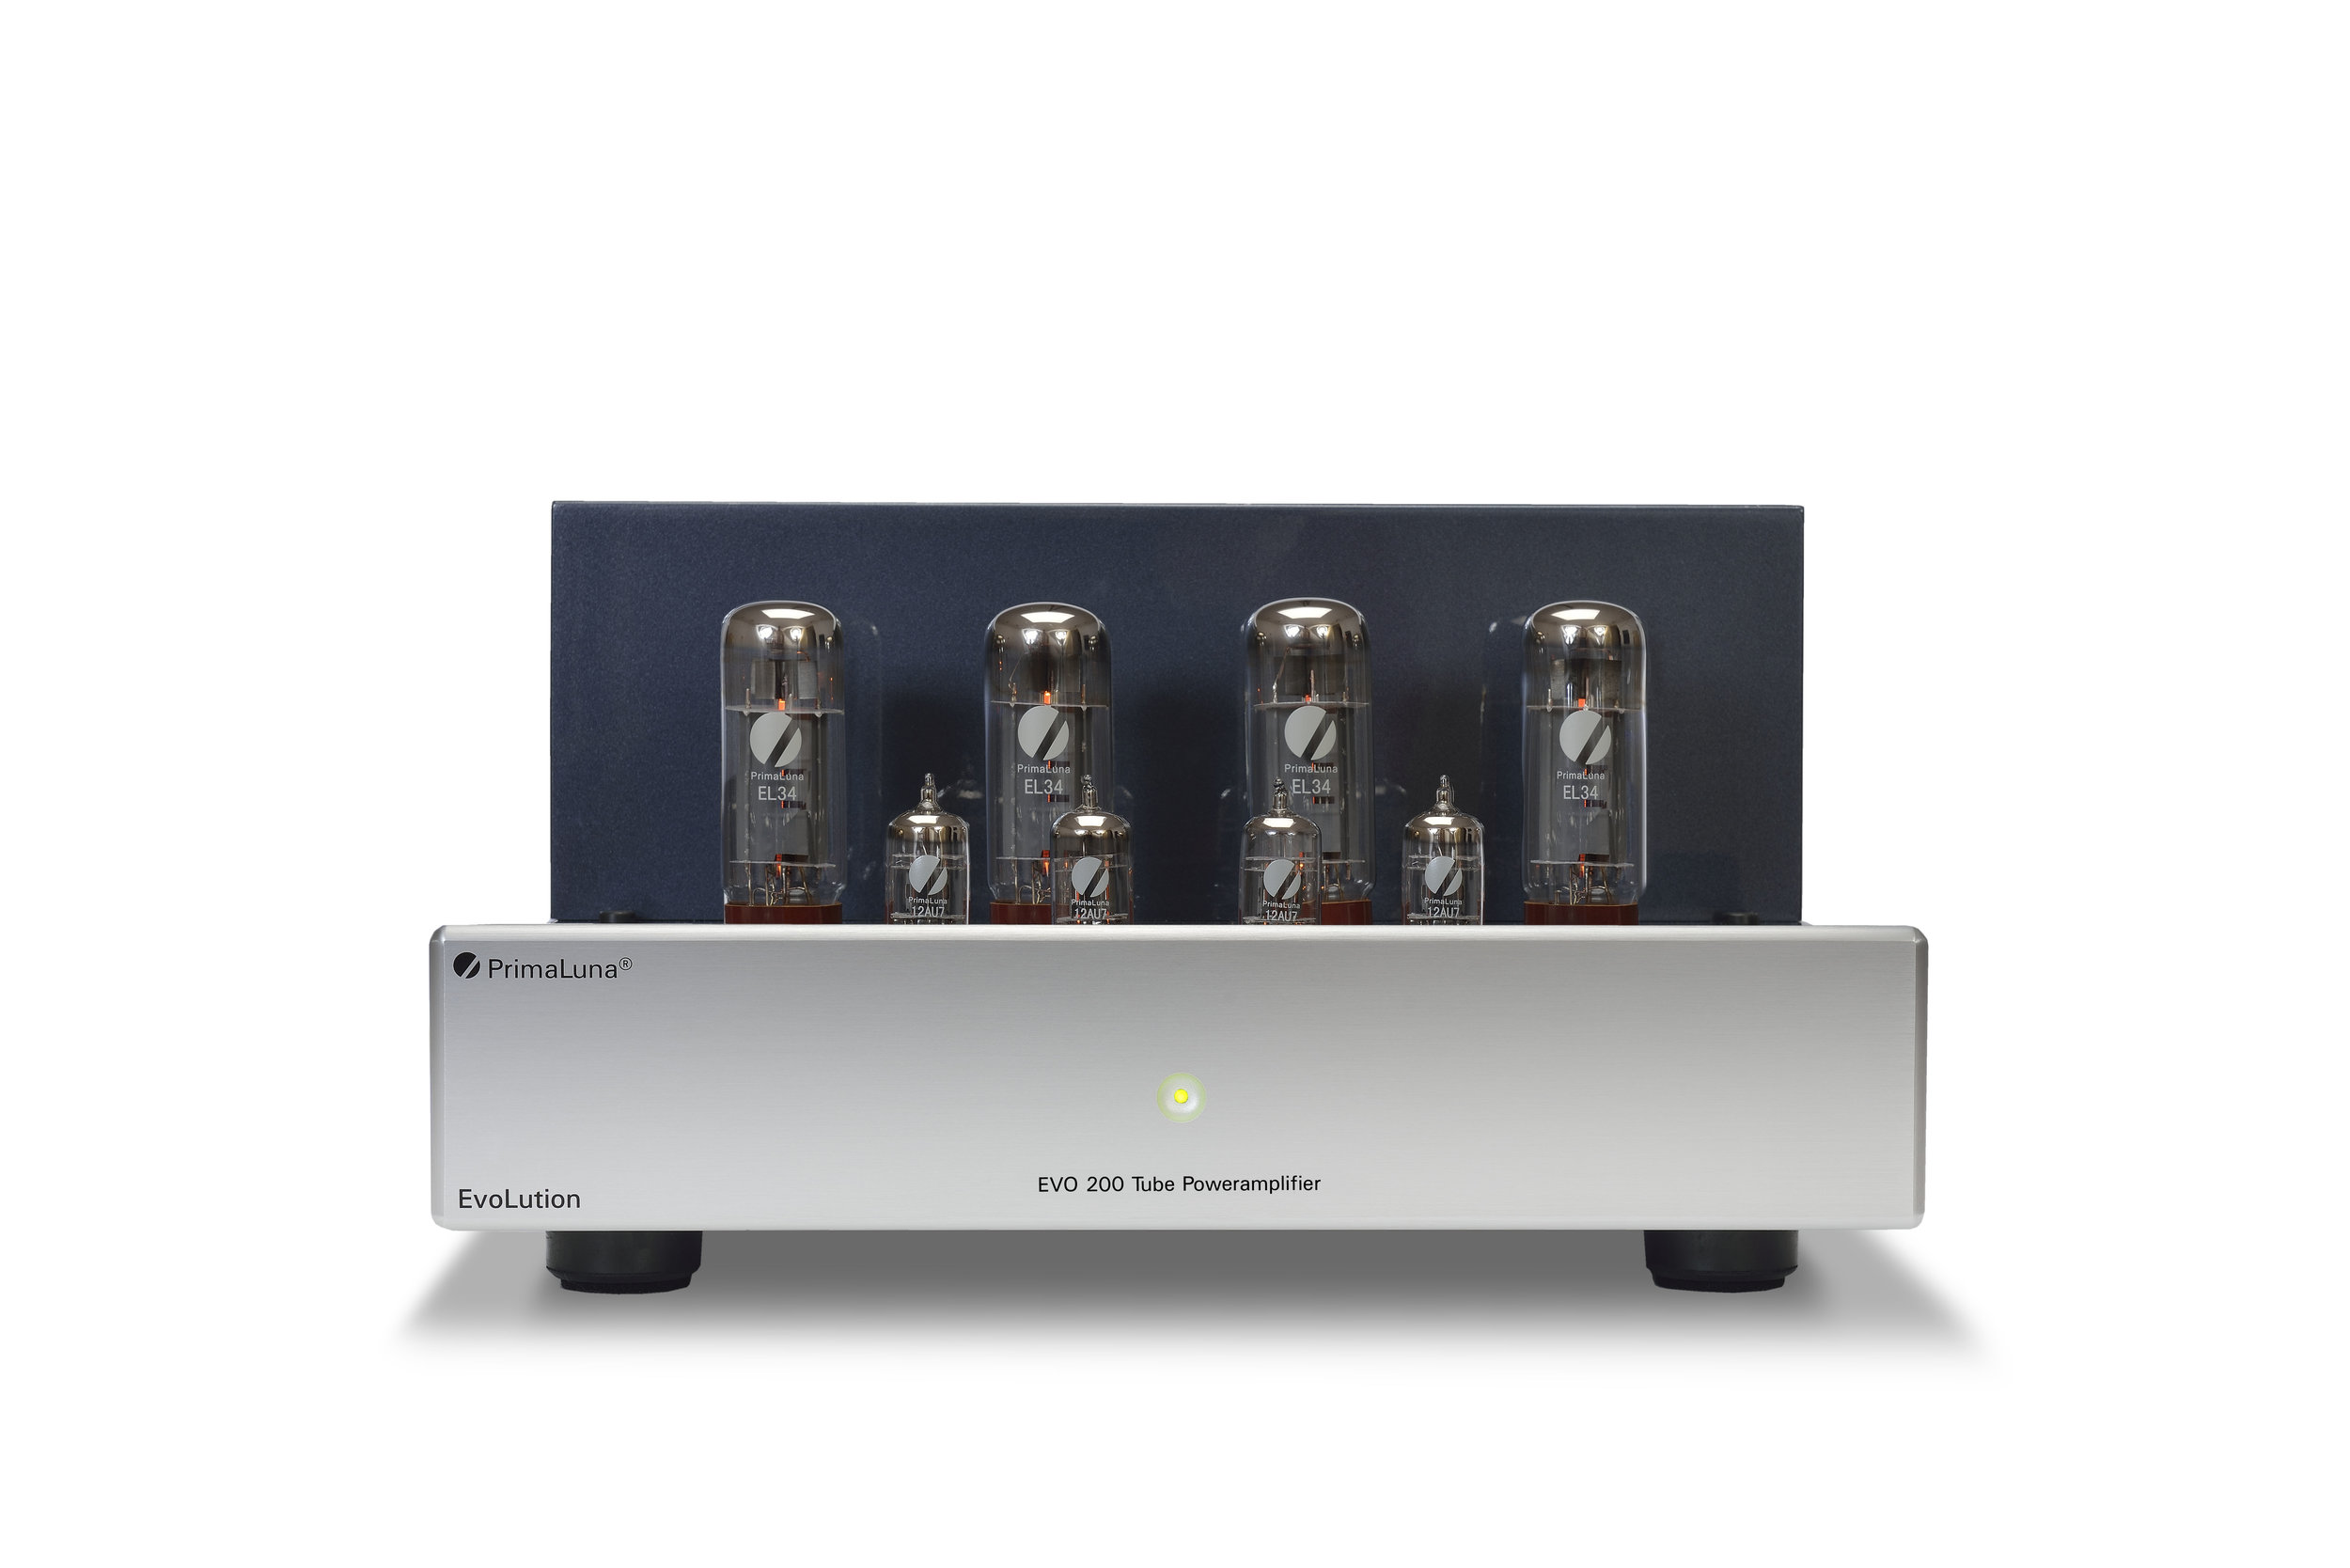 069b - PrimaLuna Evo 200 Tube Poweramplifier - silver - front low - white background.jpg